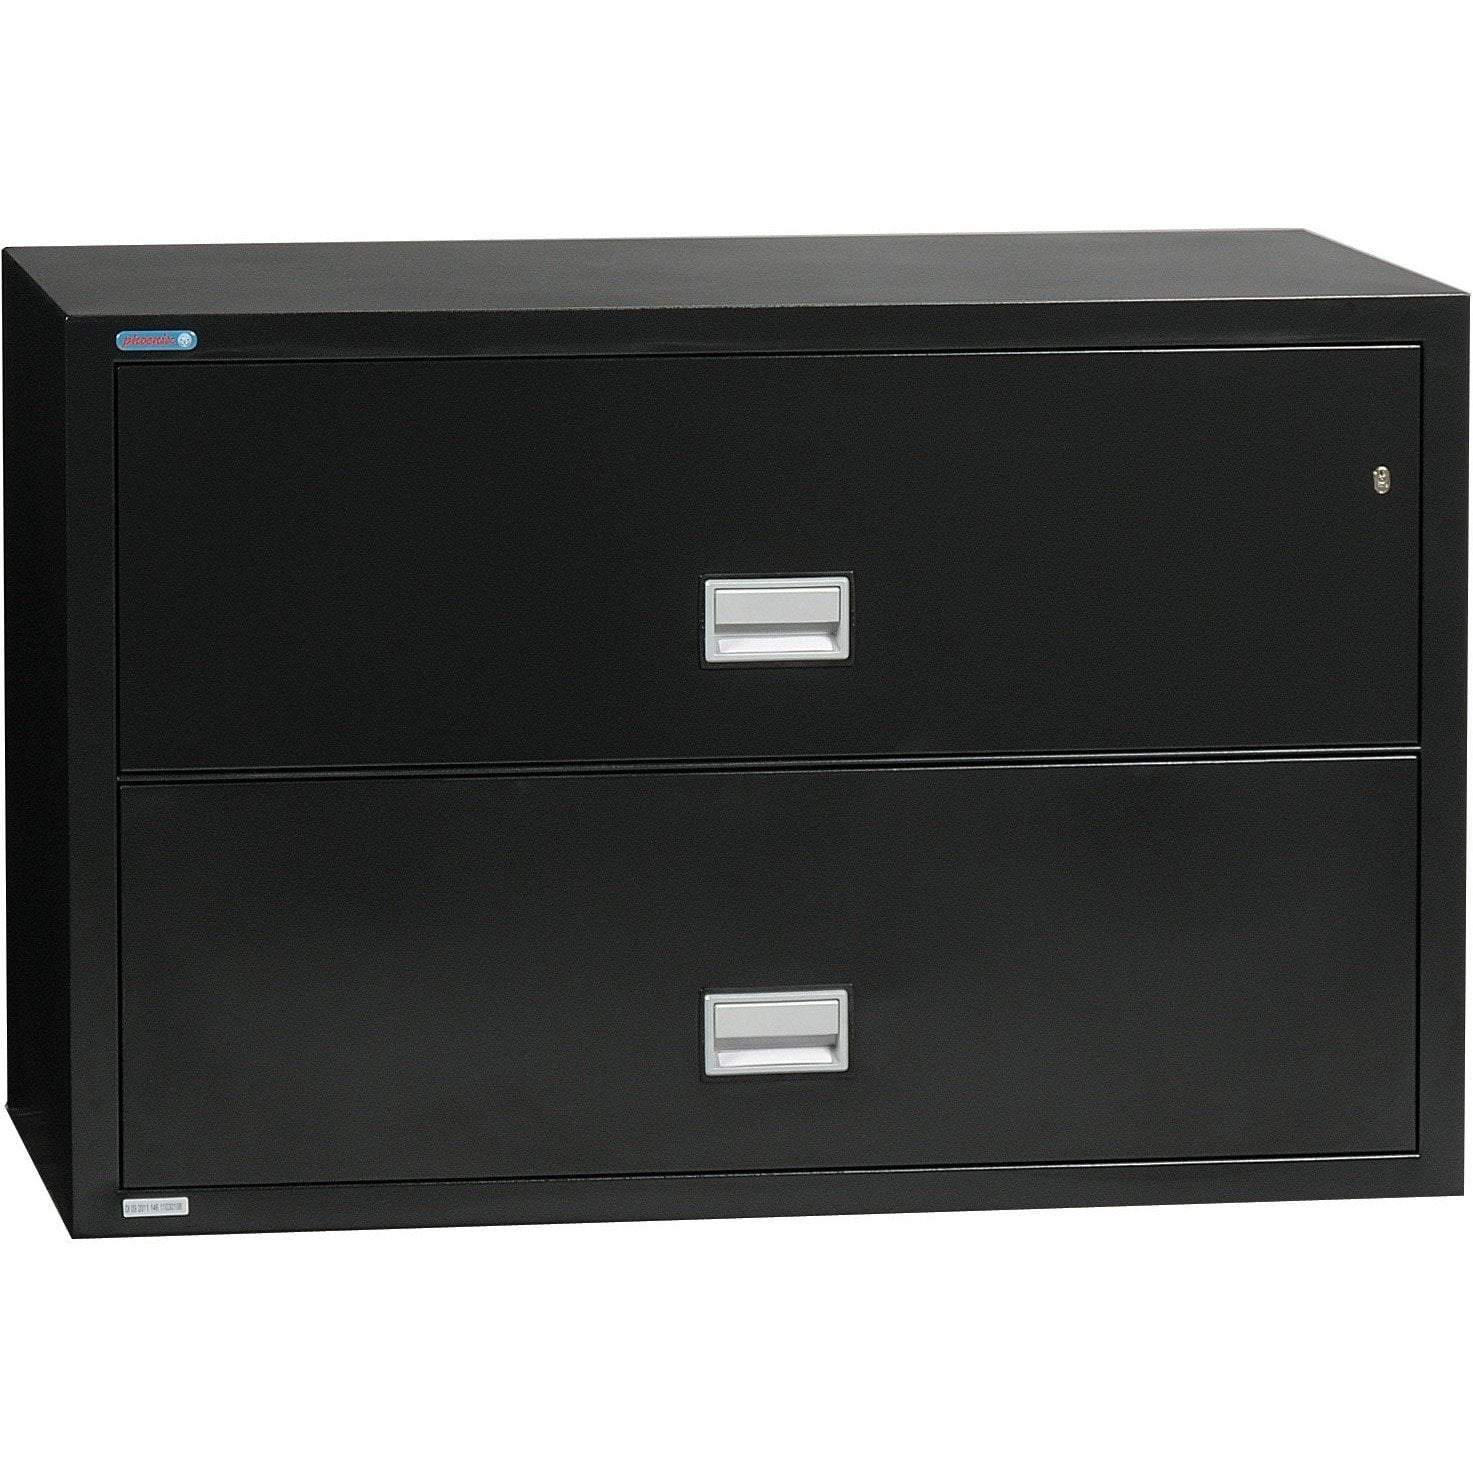 Phoenix LAT2W44 Lateral 44 inch 2-Drawer Fireproof File Cabinet Armadillo Safe and Vault